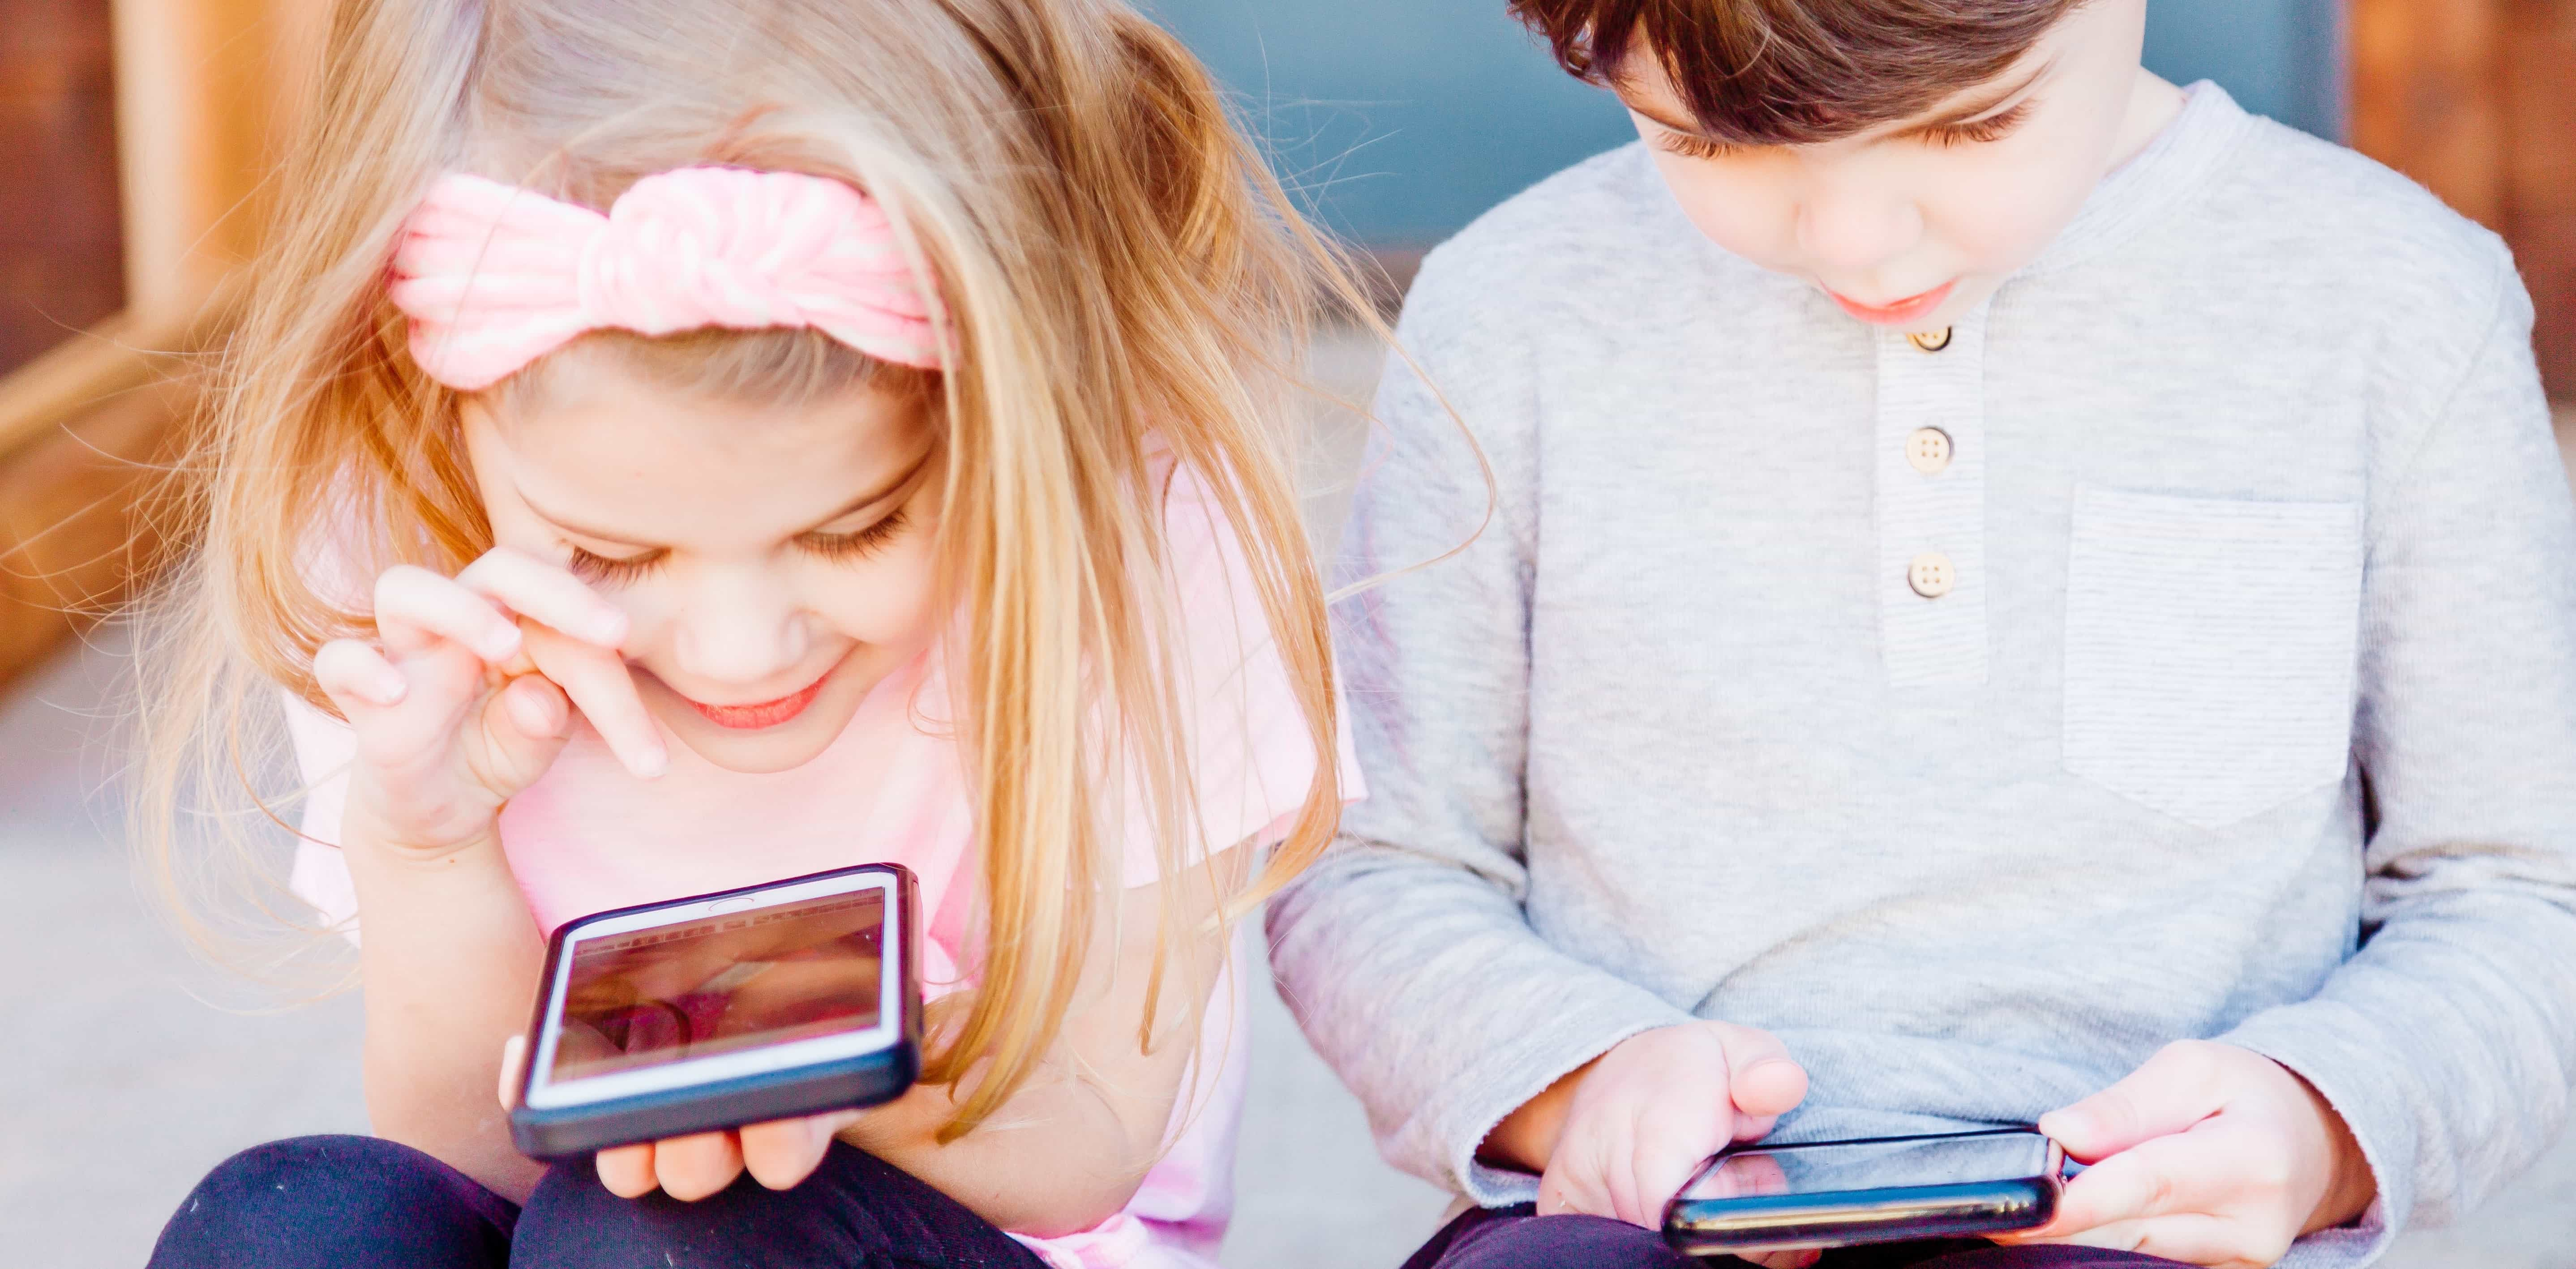 Kids use apps